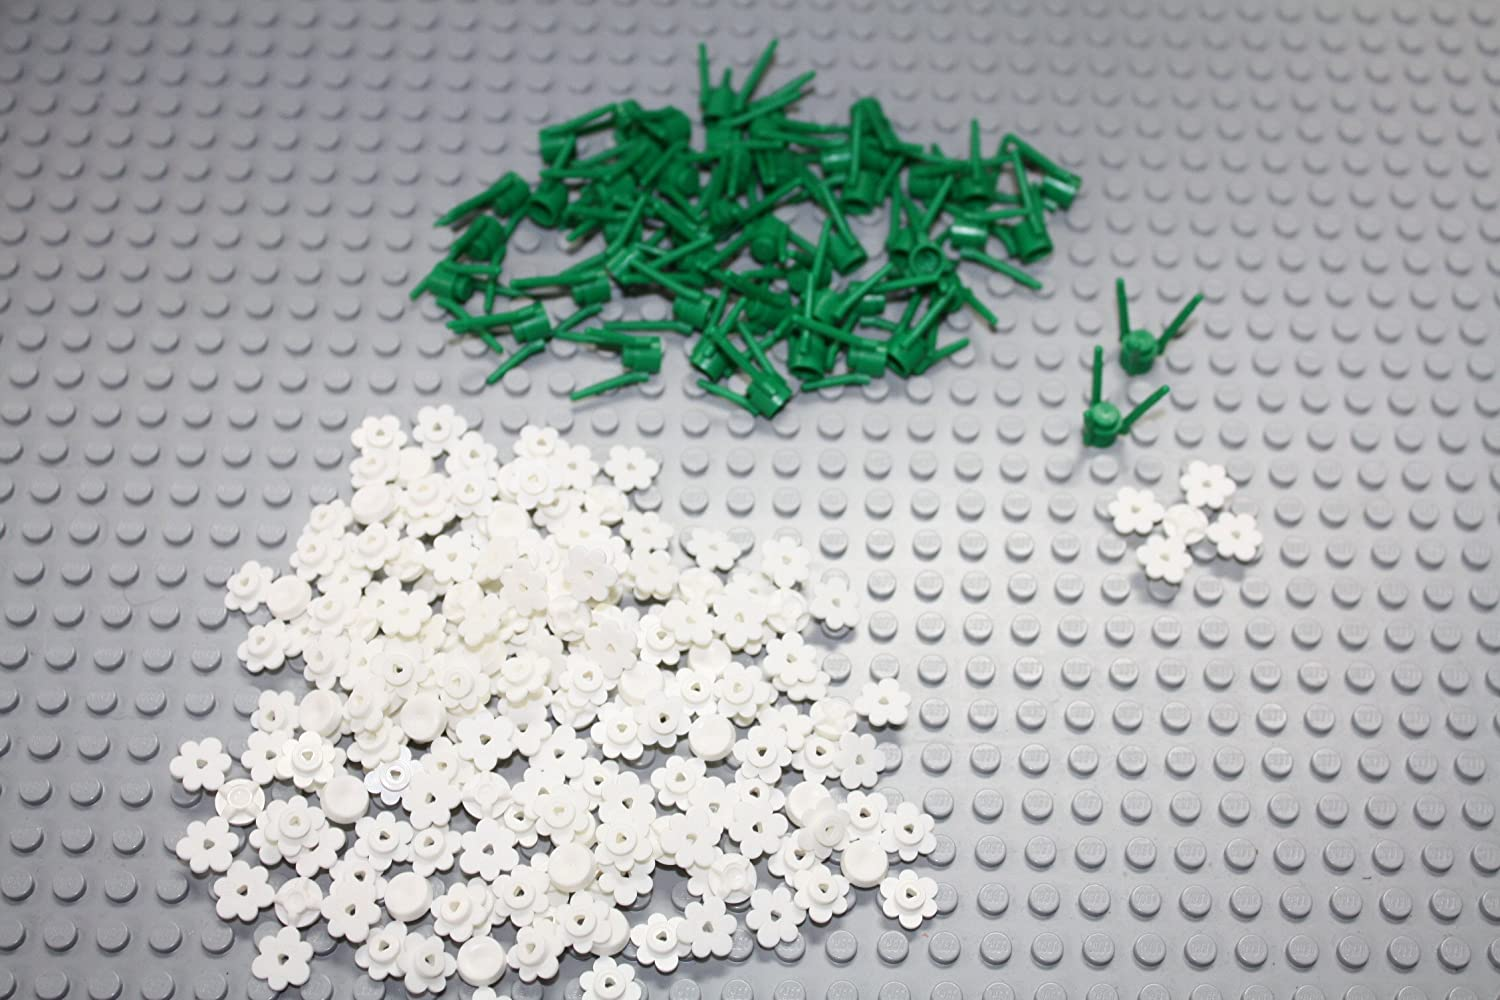 Lego Parts: 50 plant flower stems (3 flowers per stem) AND 152 white flowers - Loose